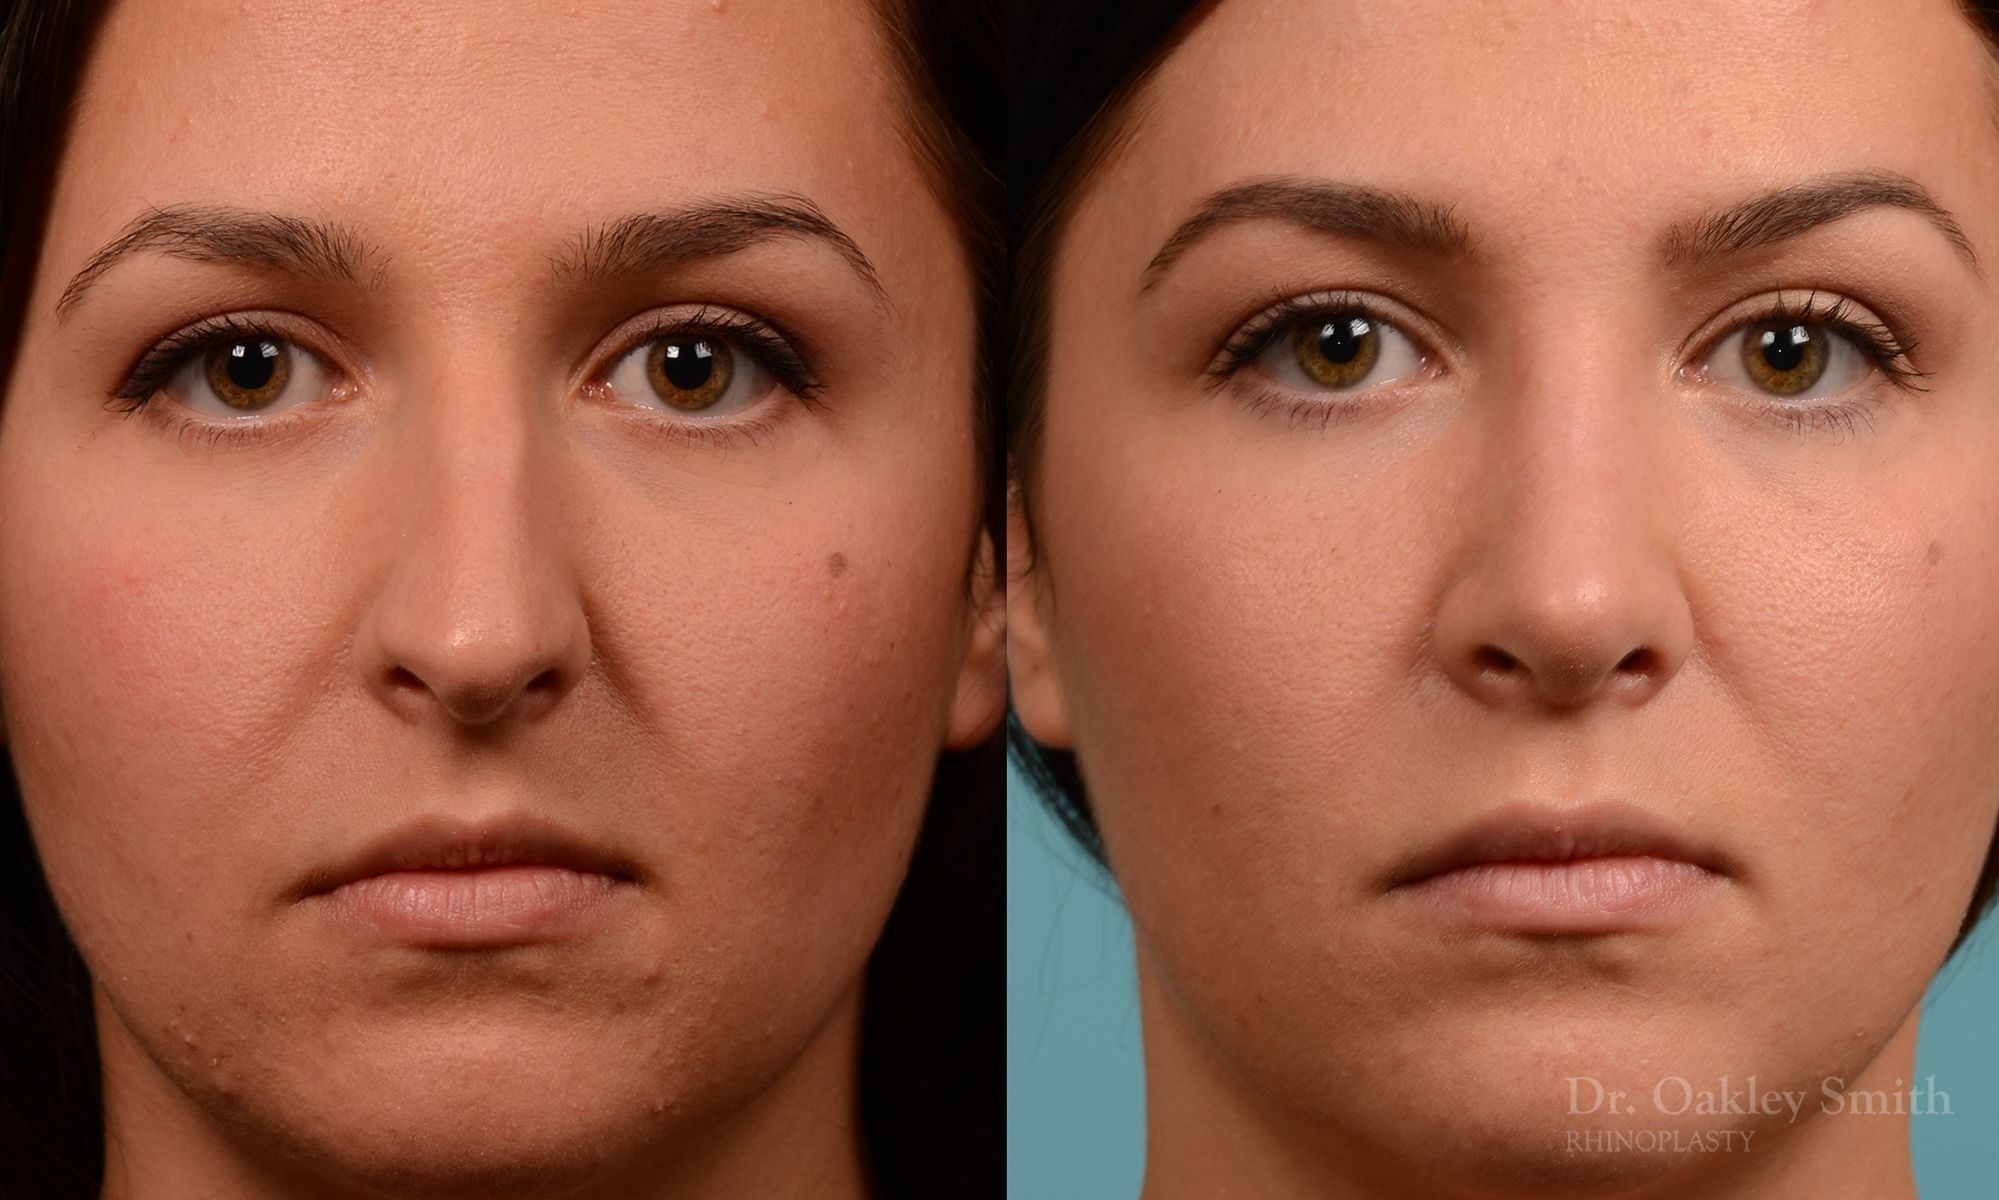 Rhinoplasty hump reduction surgery